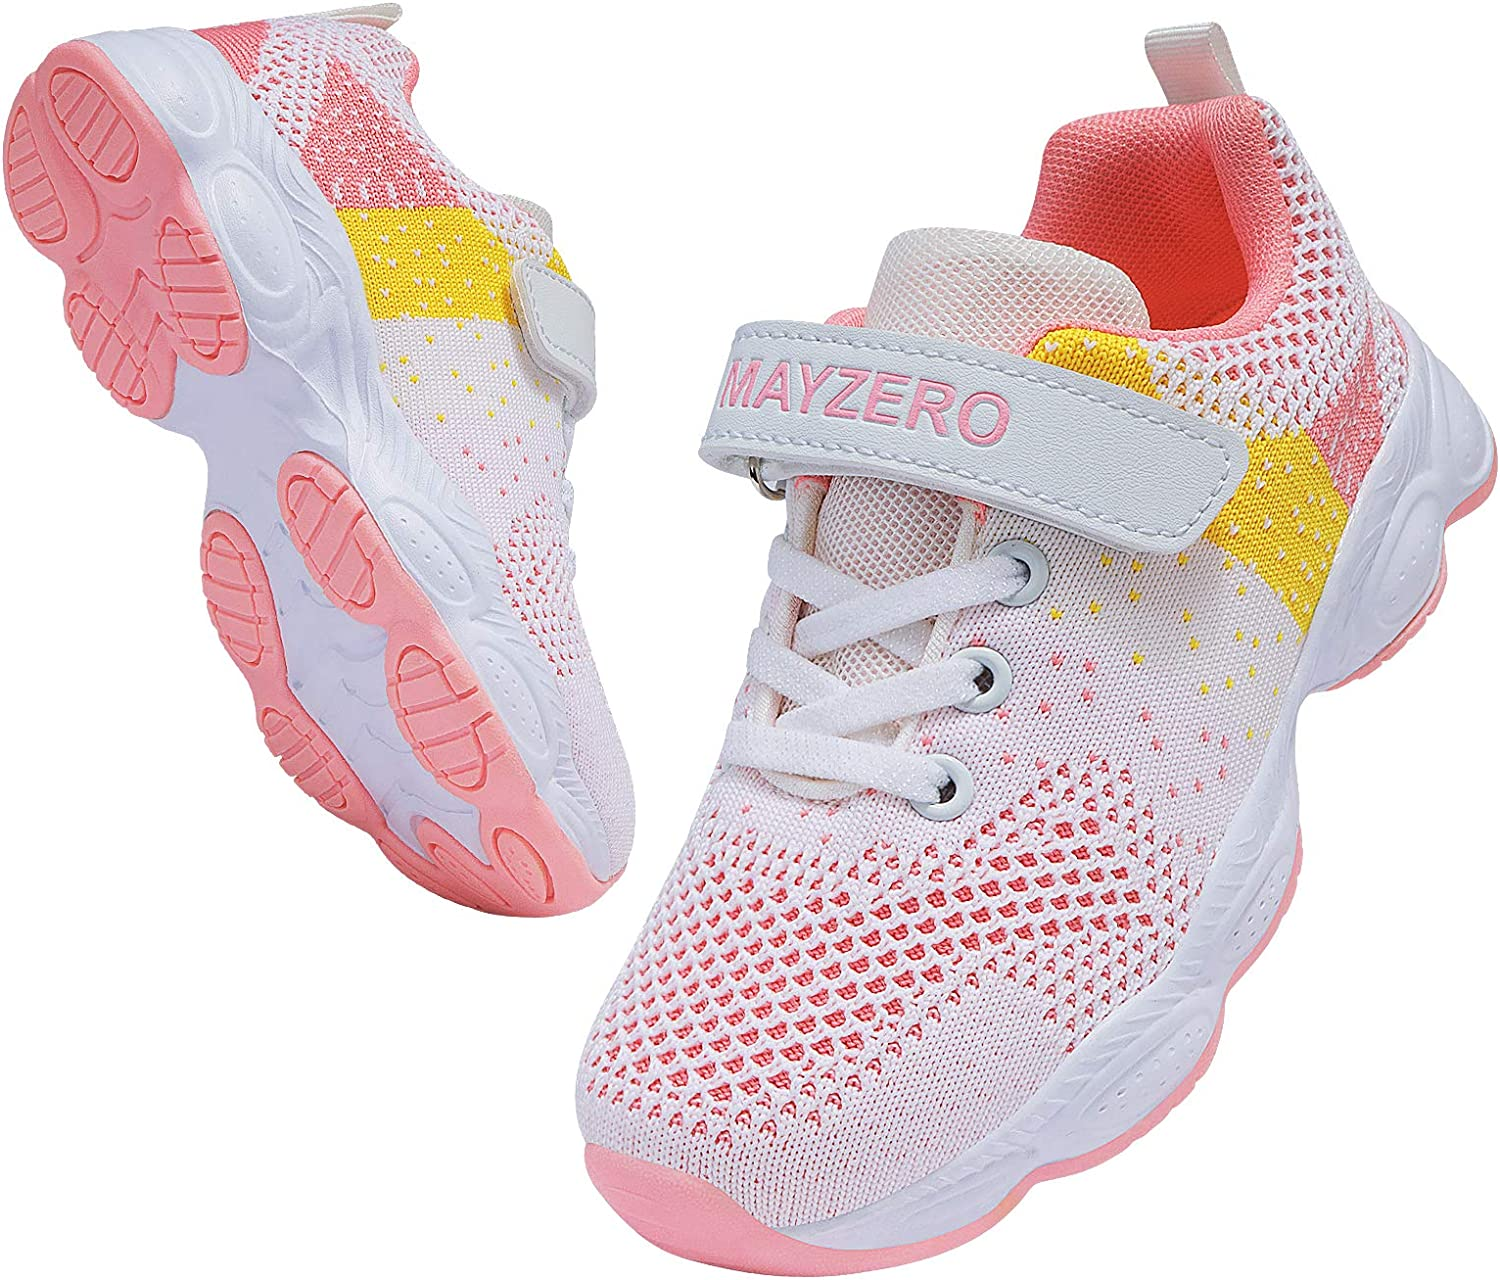 Lingmu Girl's Boys Fashionable Running Breathable Non- Free shipping on posting reviews Kid Shoes price